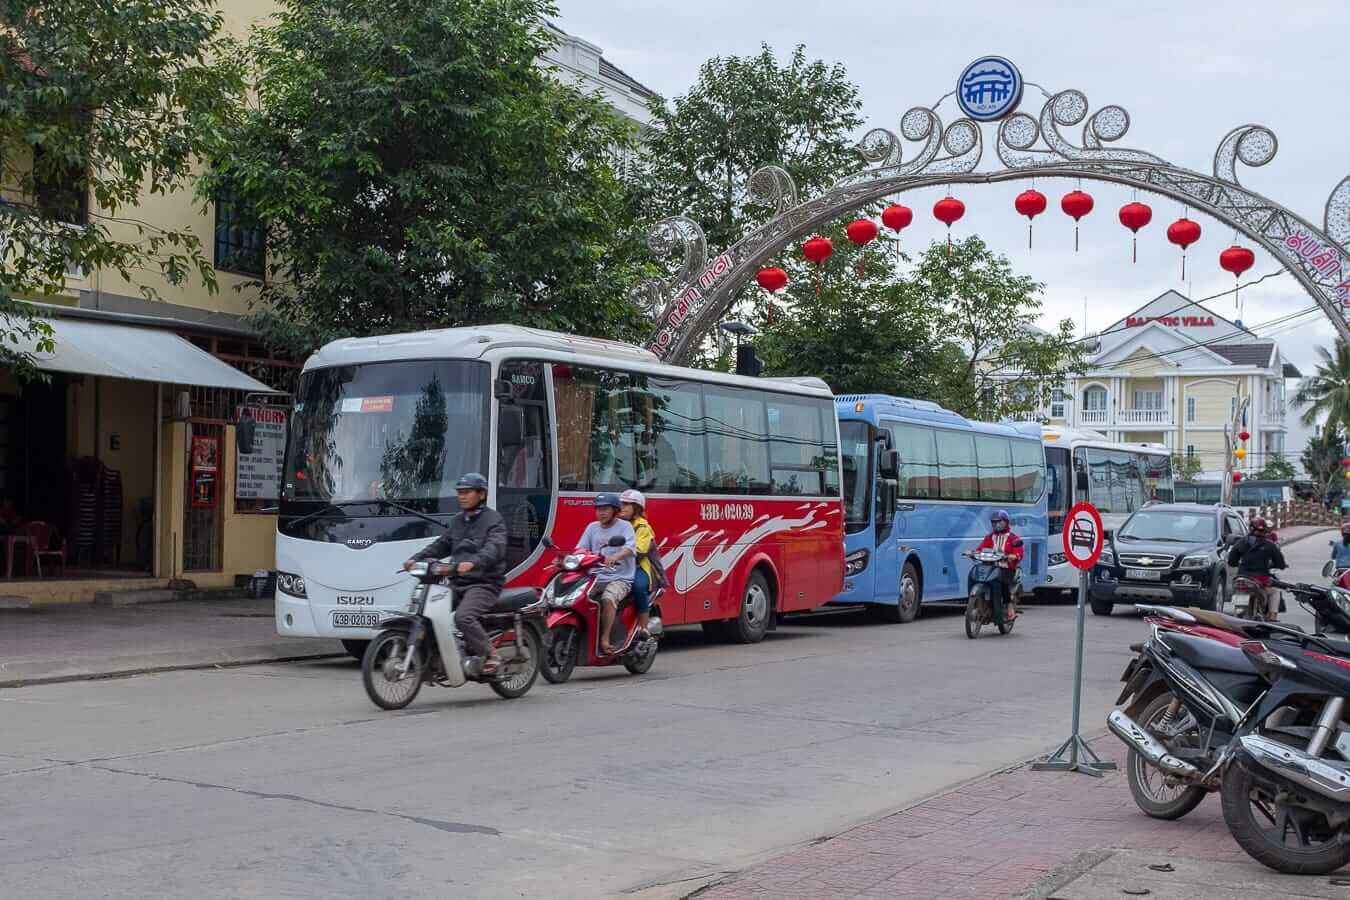 Buses outside The Royal Hoi An: Hoi An bus station